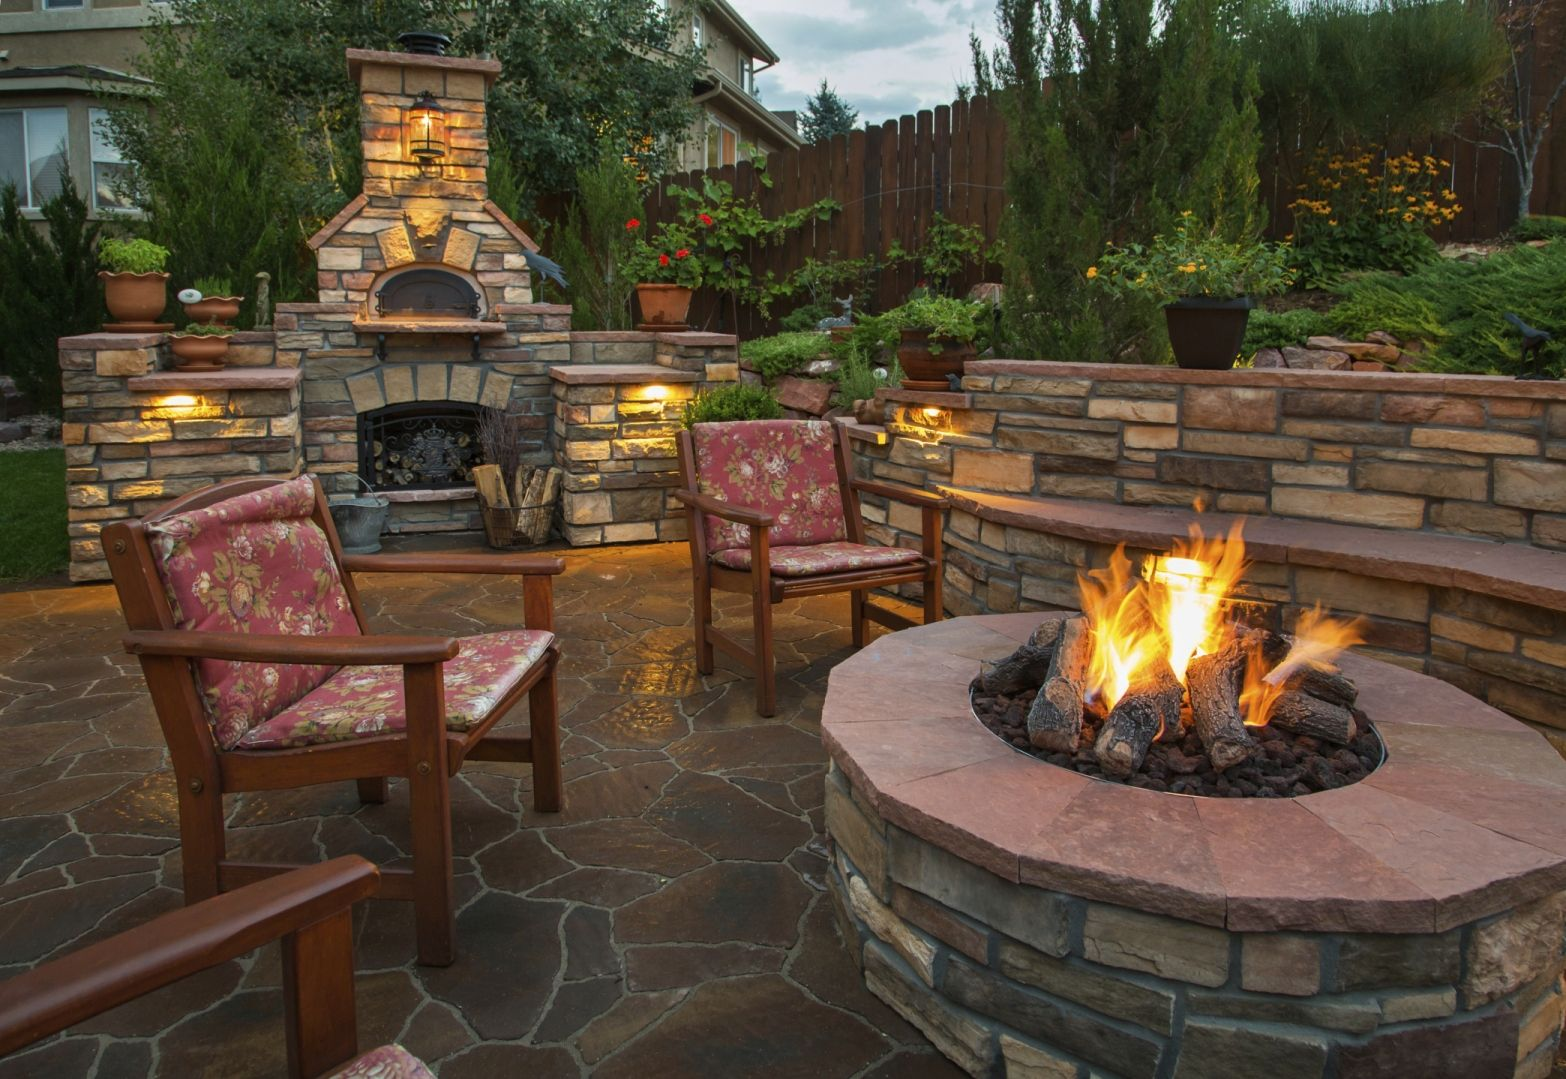 Getting Ready To Entertain This Summer Consider Adding A Deck Or Patio